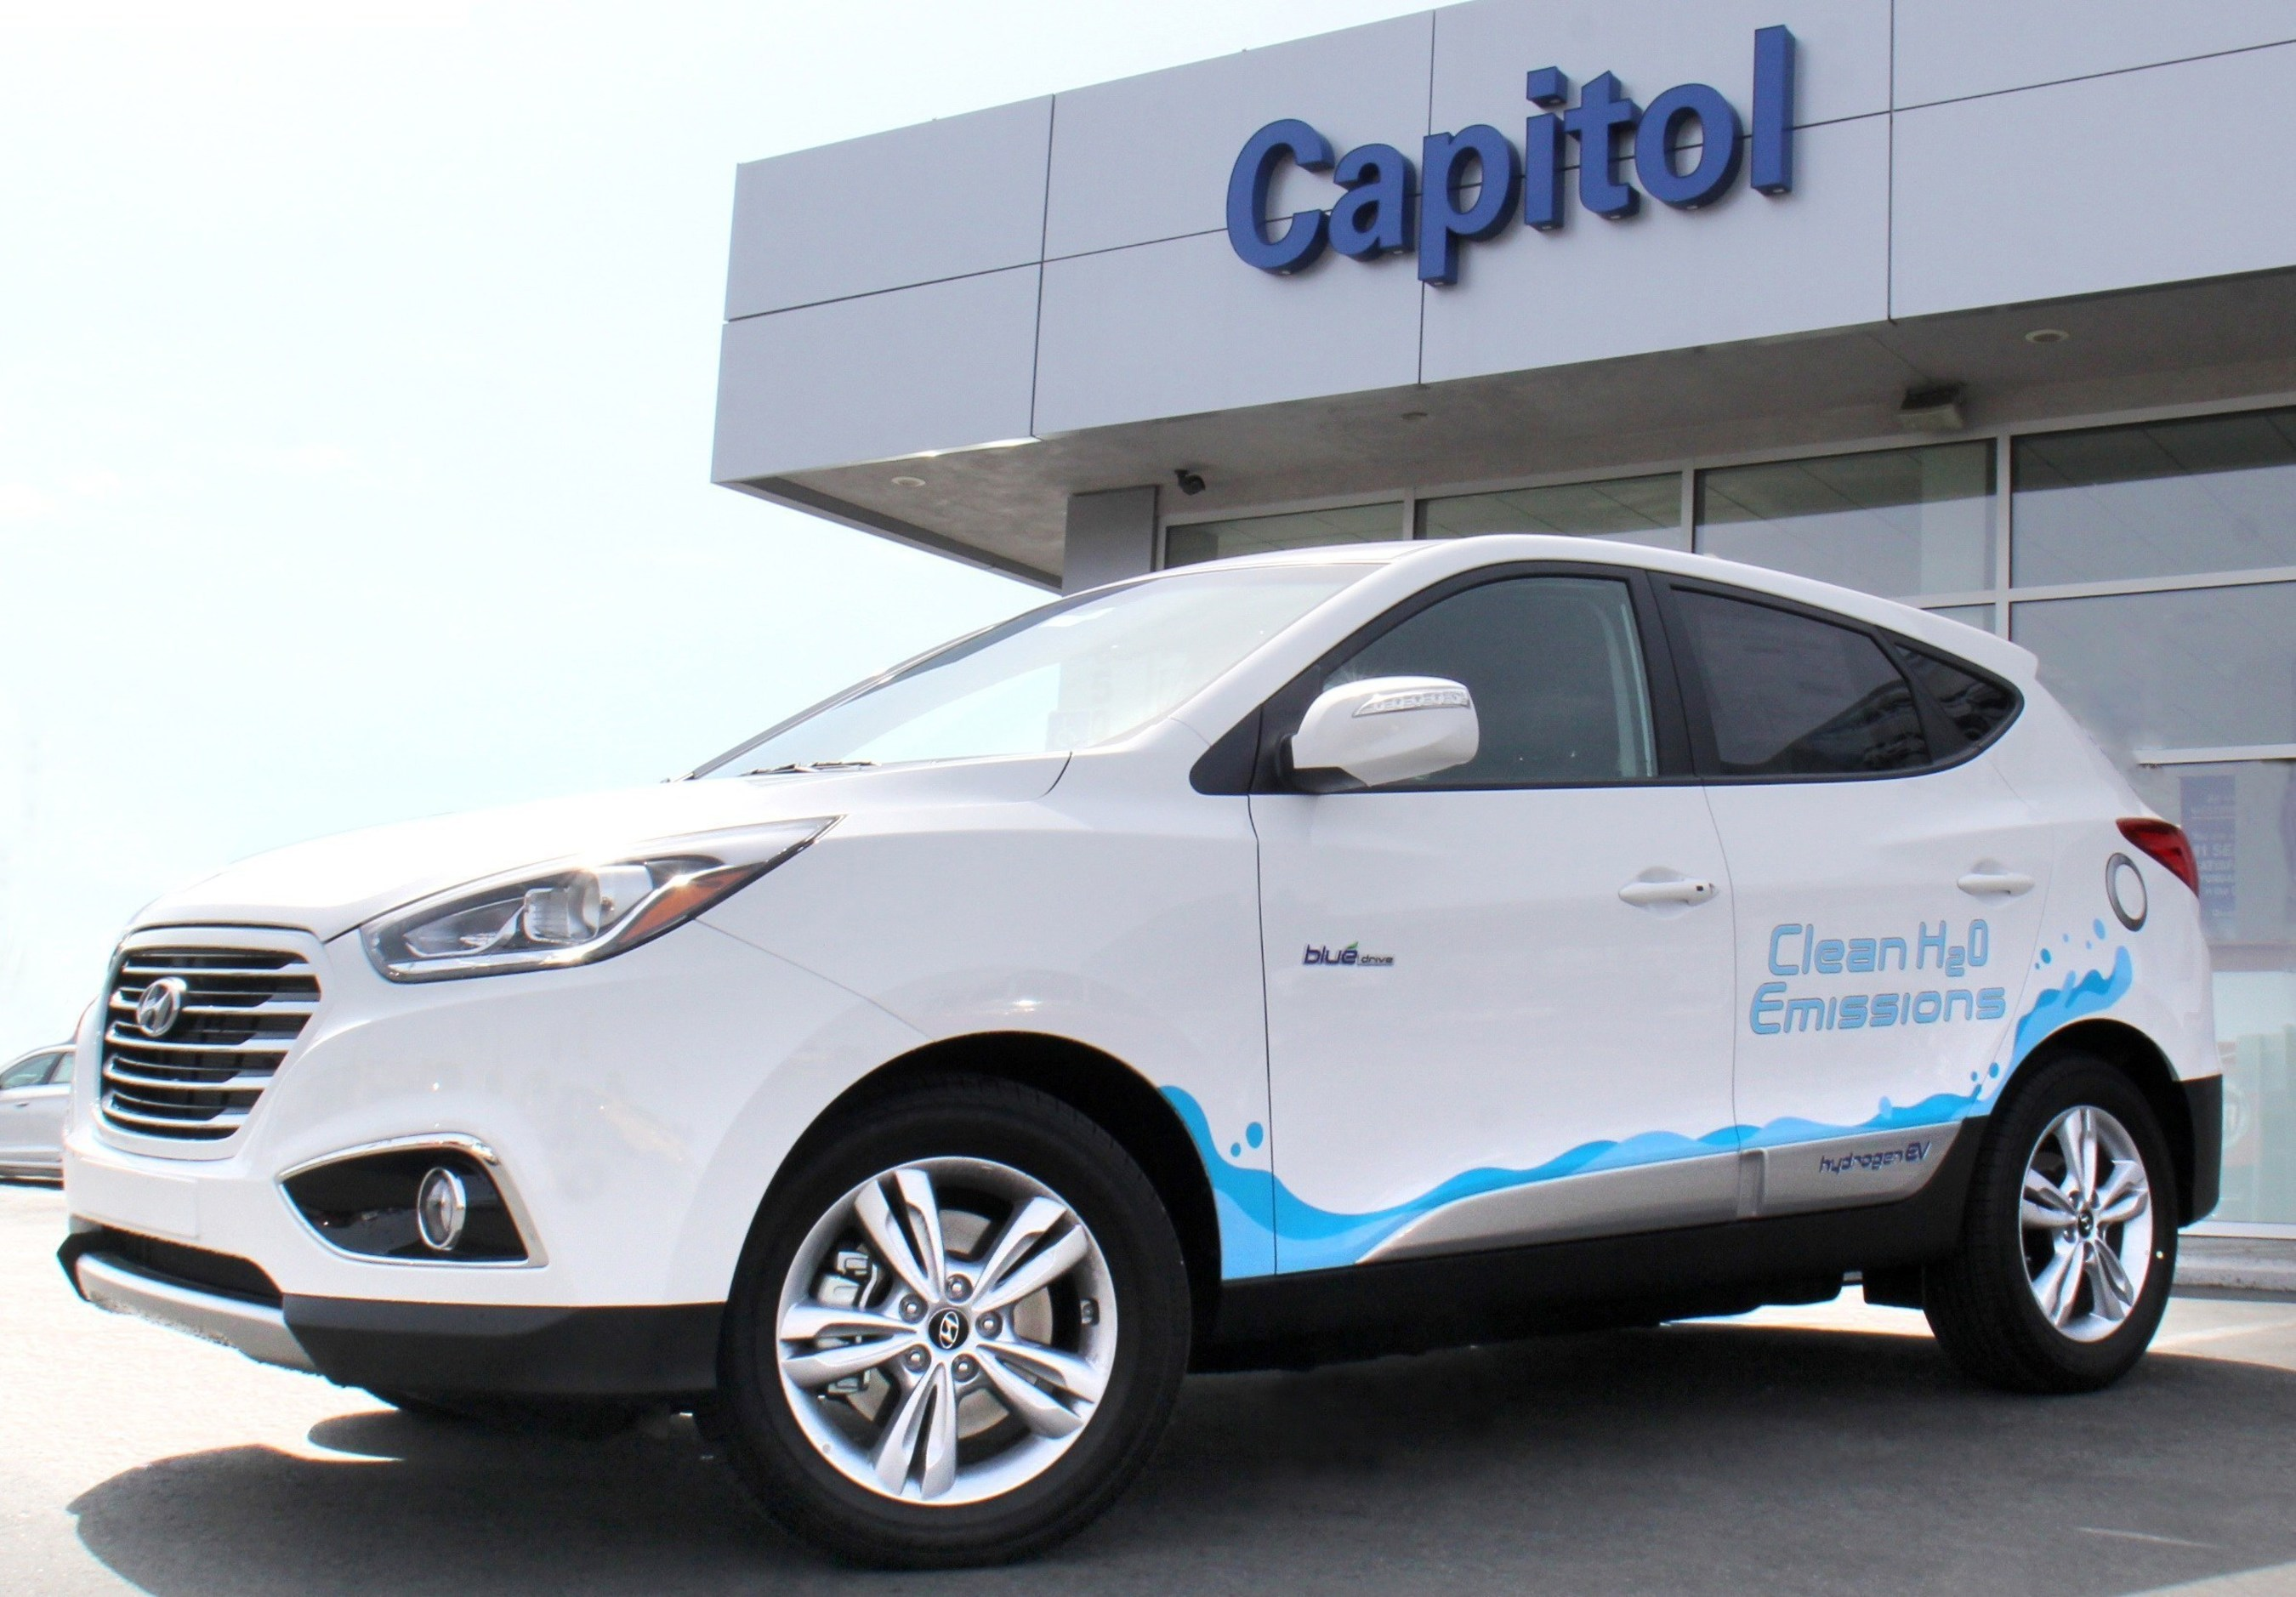 Capitol Hyundai of San Jose, California, a proud member of the Del Grande Dealer Group, delivered the first zero-emissions Hyundai Tucson Fuel Cell hydrogen electric vehicle in the Northern California region today.